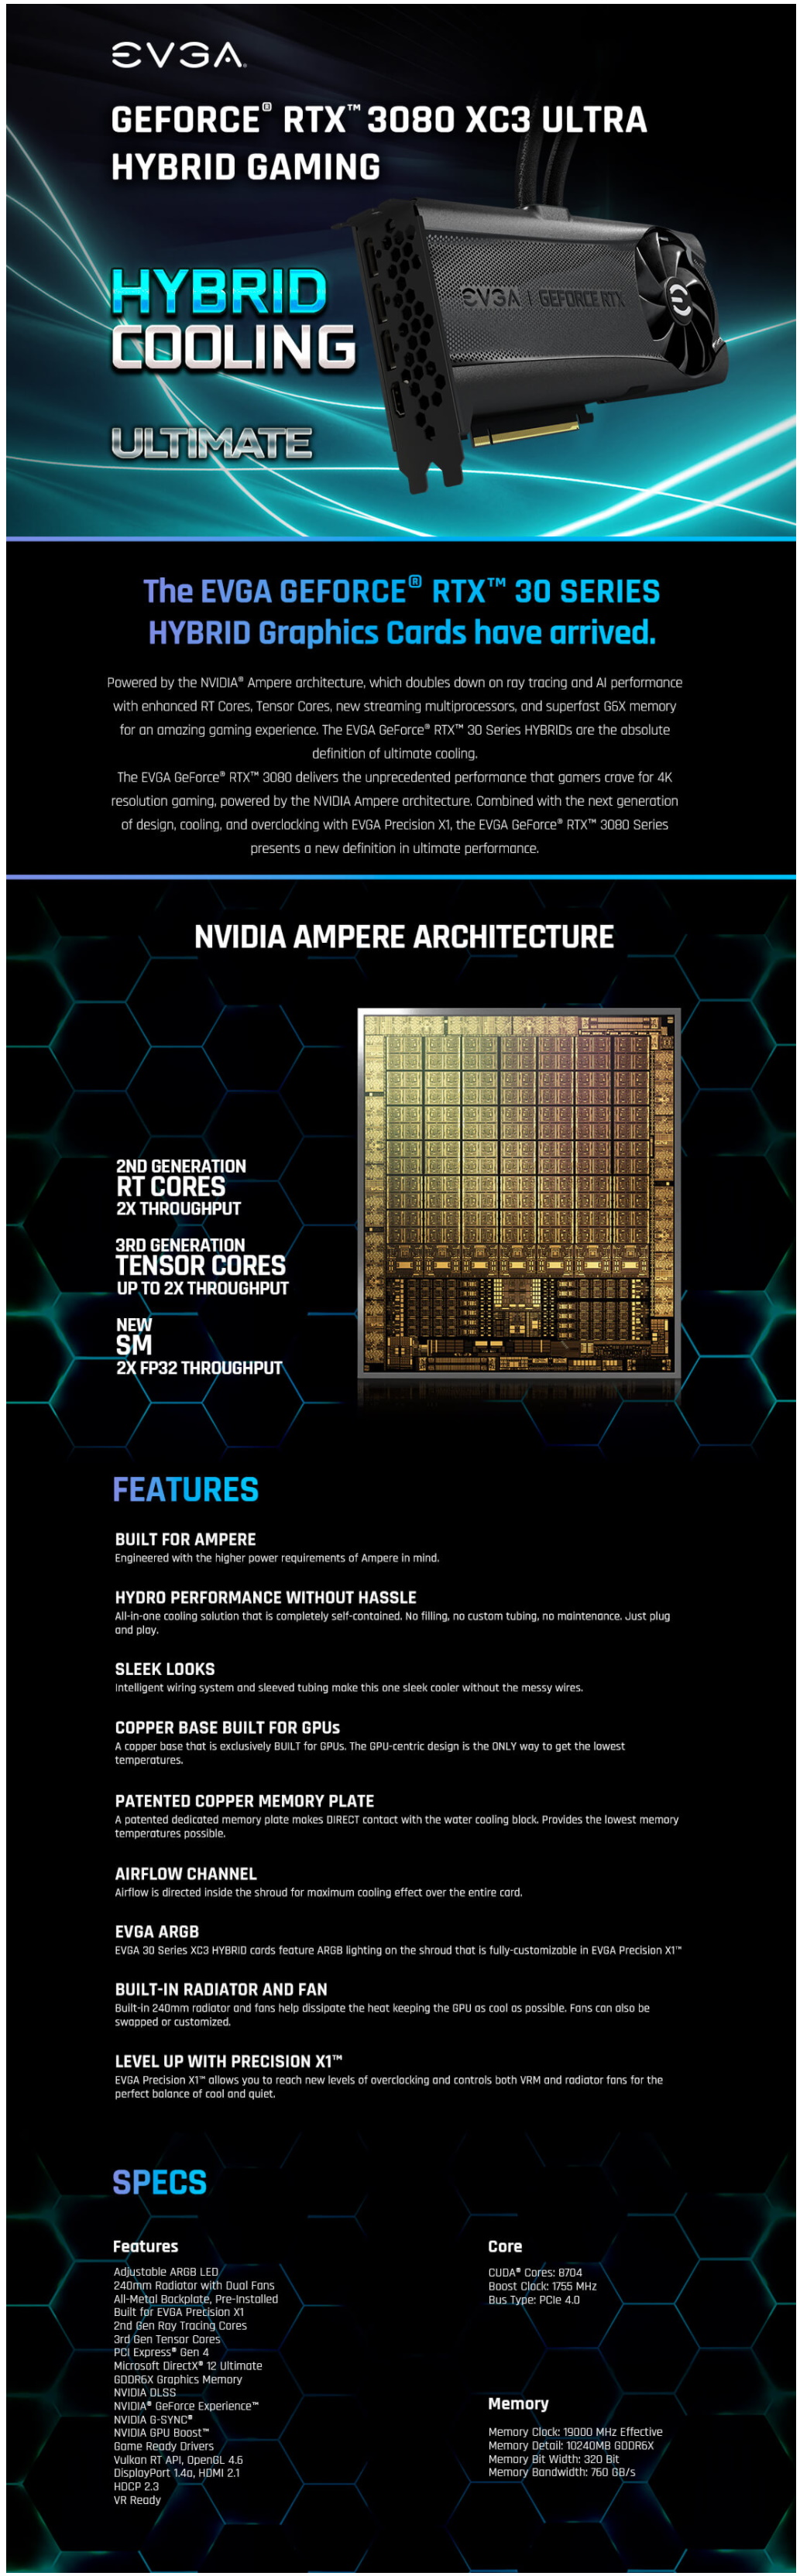 A large marketing image providing additional information about the product eVGA GeForce RTX 3080 XC3 Hybrid Ultra 10GB GDDR6X - Additional alt info not provided